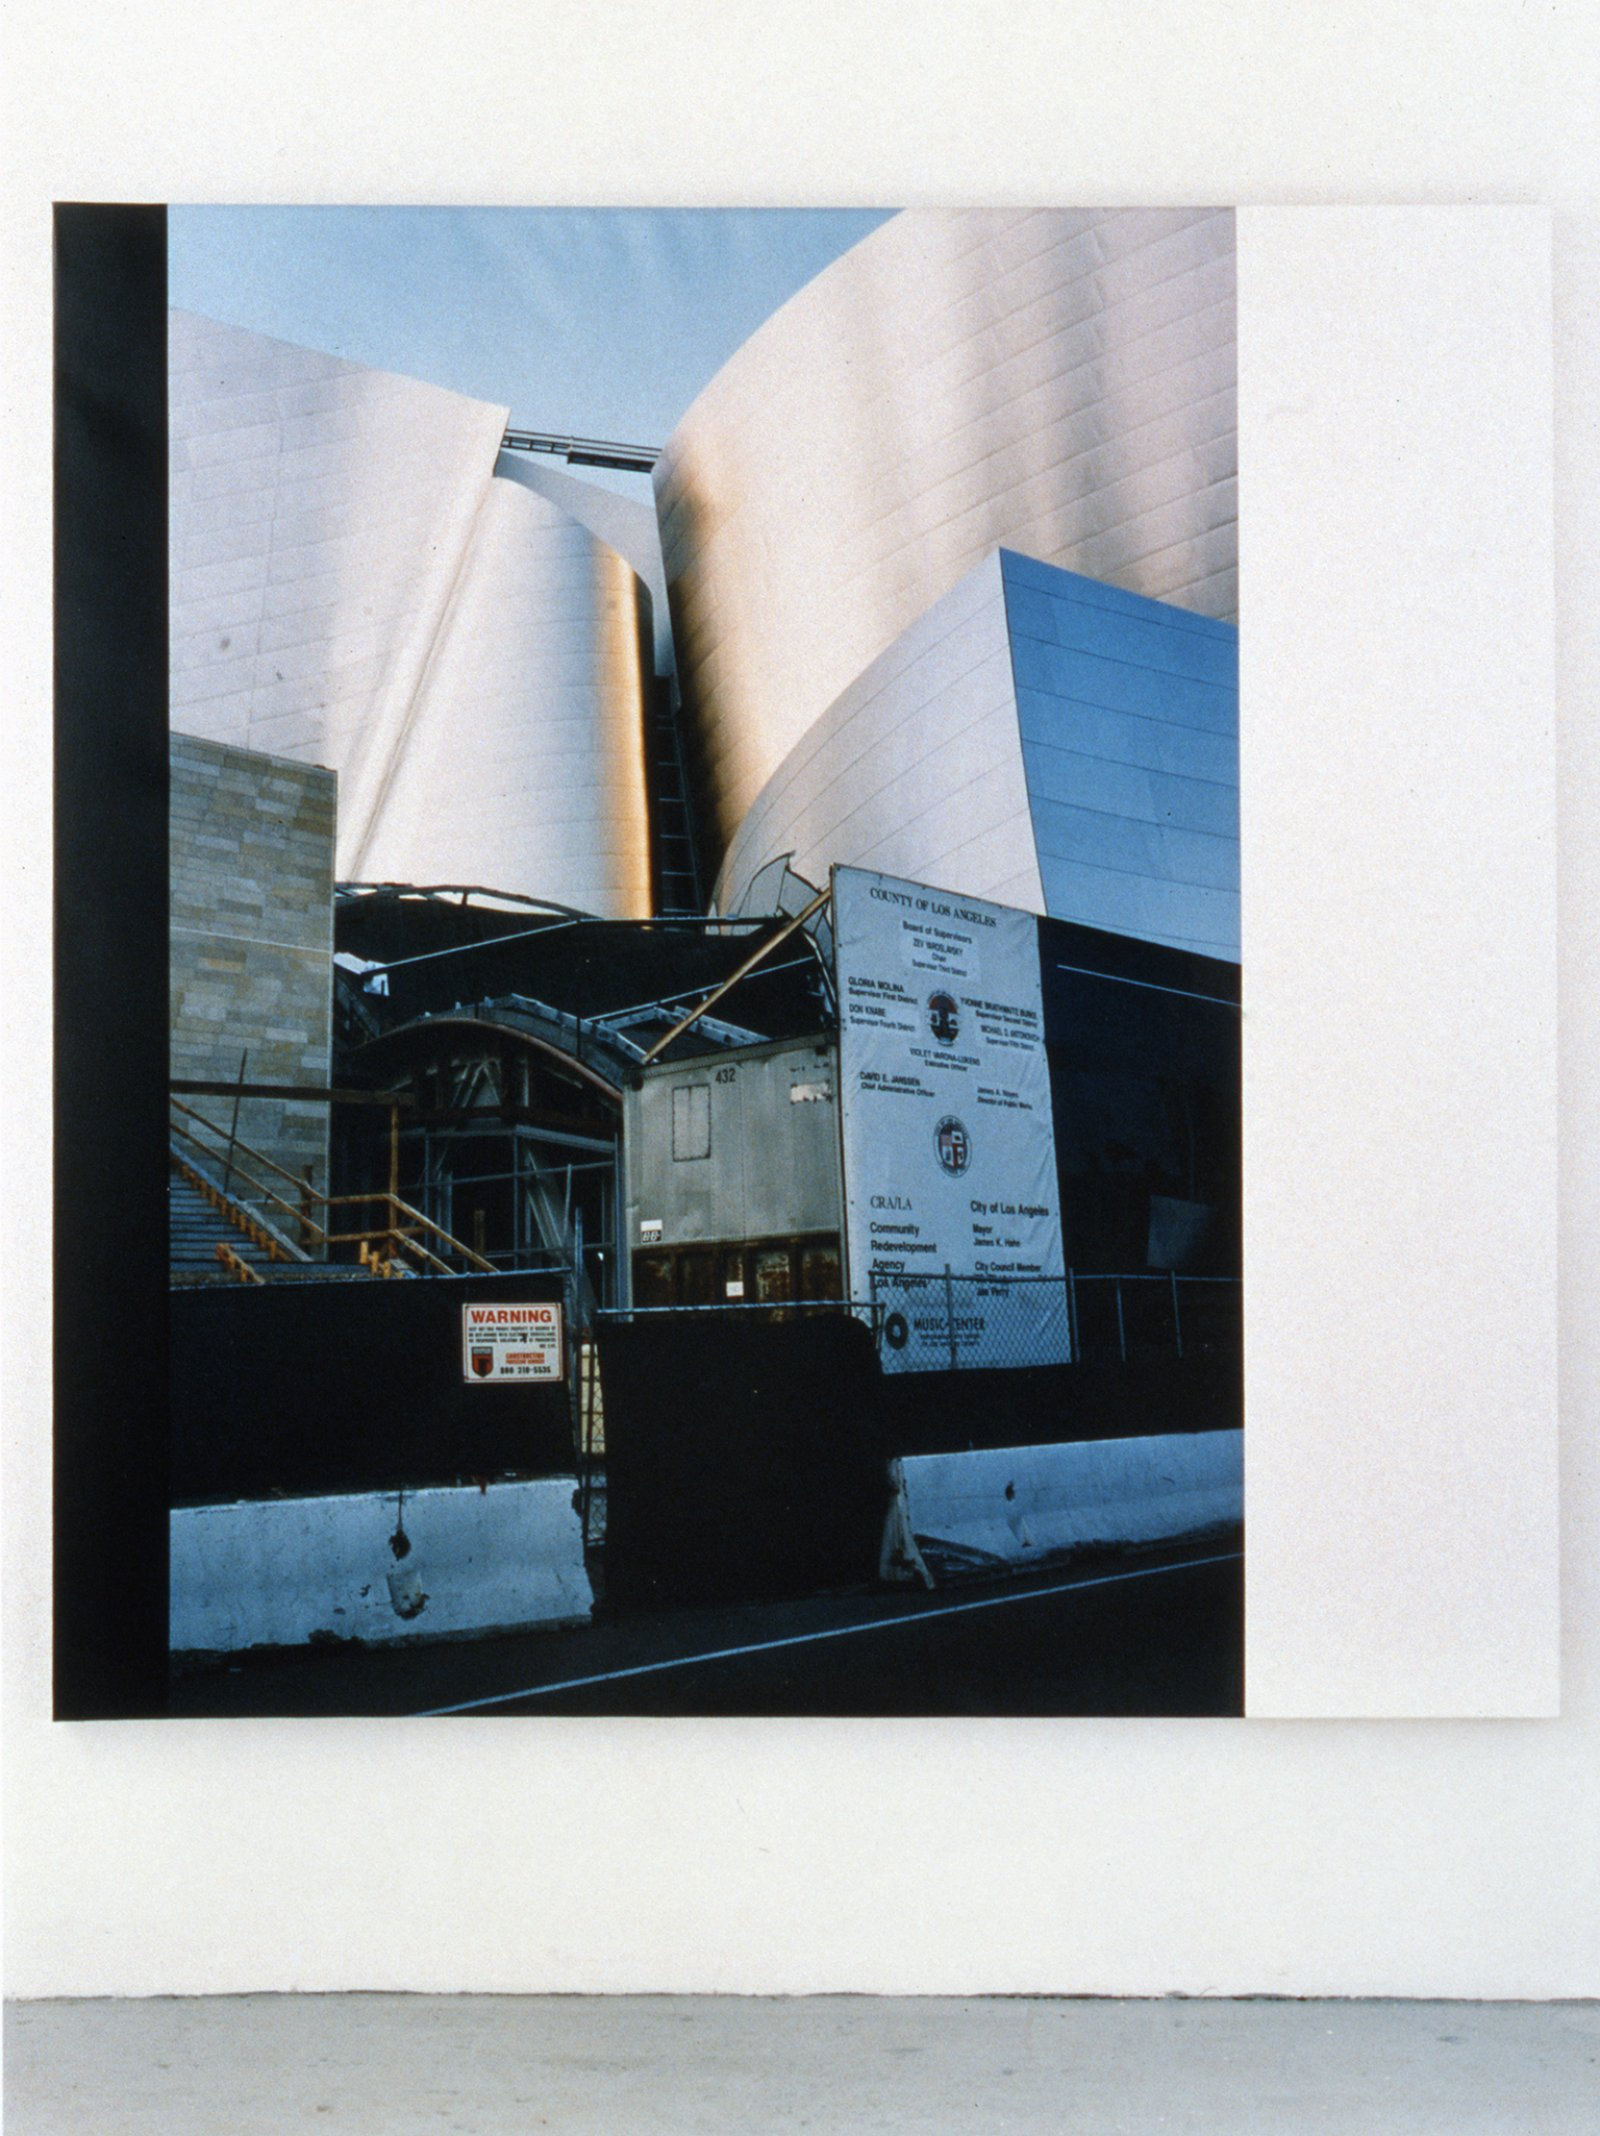 Ian Wallace,Construction Site LA II, 2003, photolaminate and acrylic on canvas,72 x 72 in. (183 x 183cm)